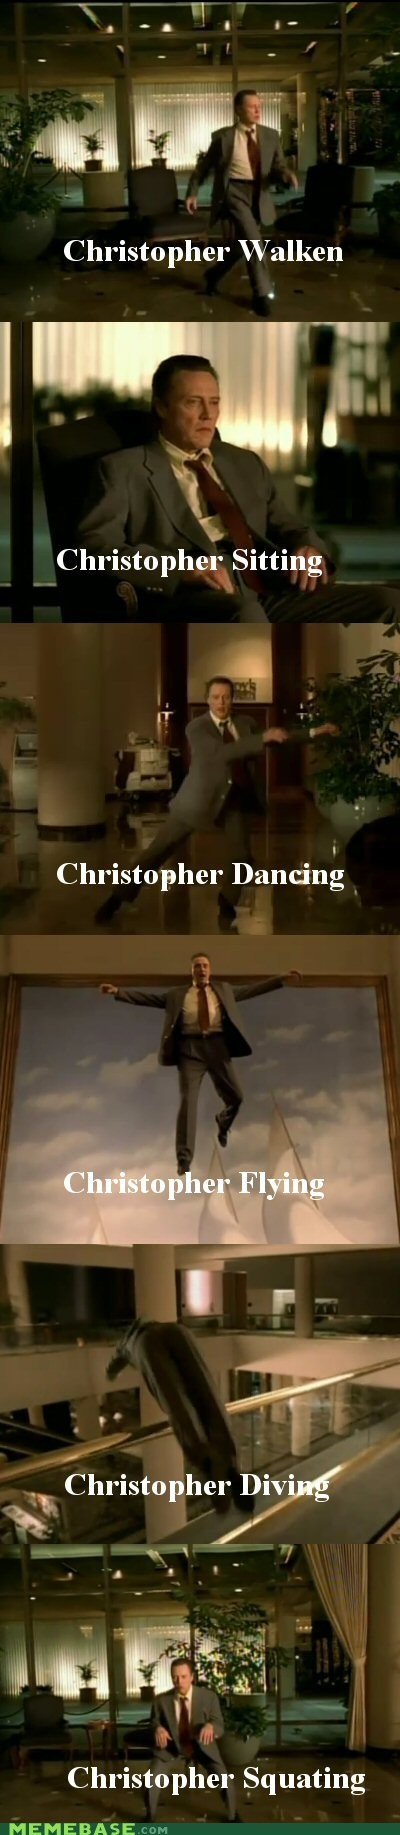 christopher walken,music video,pun,the internets